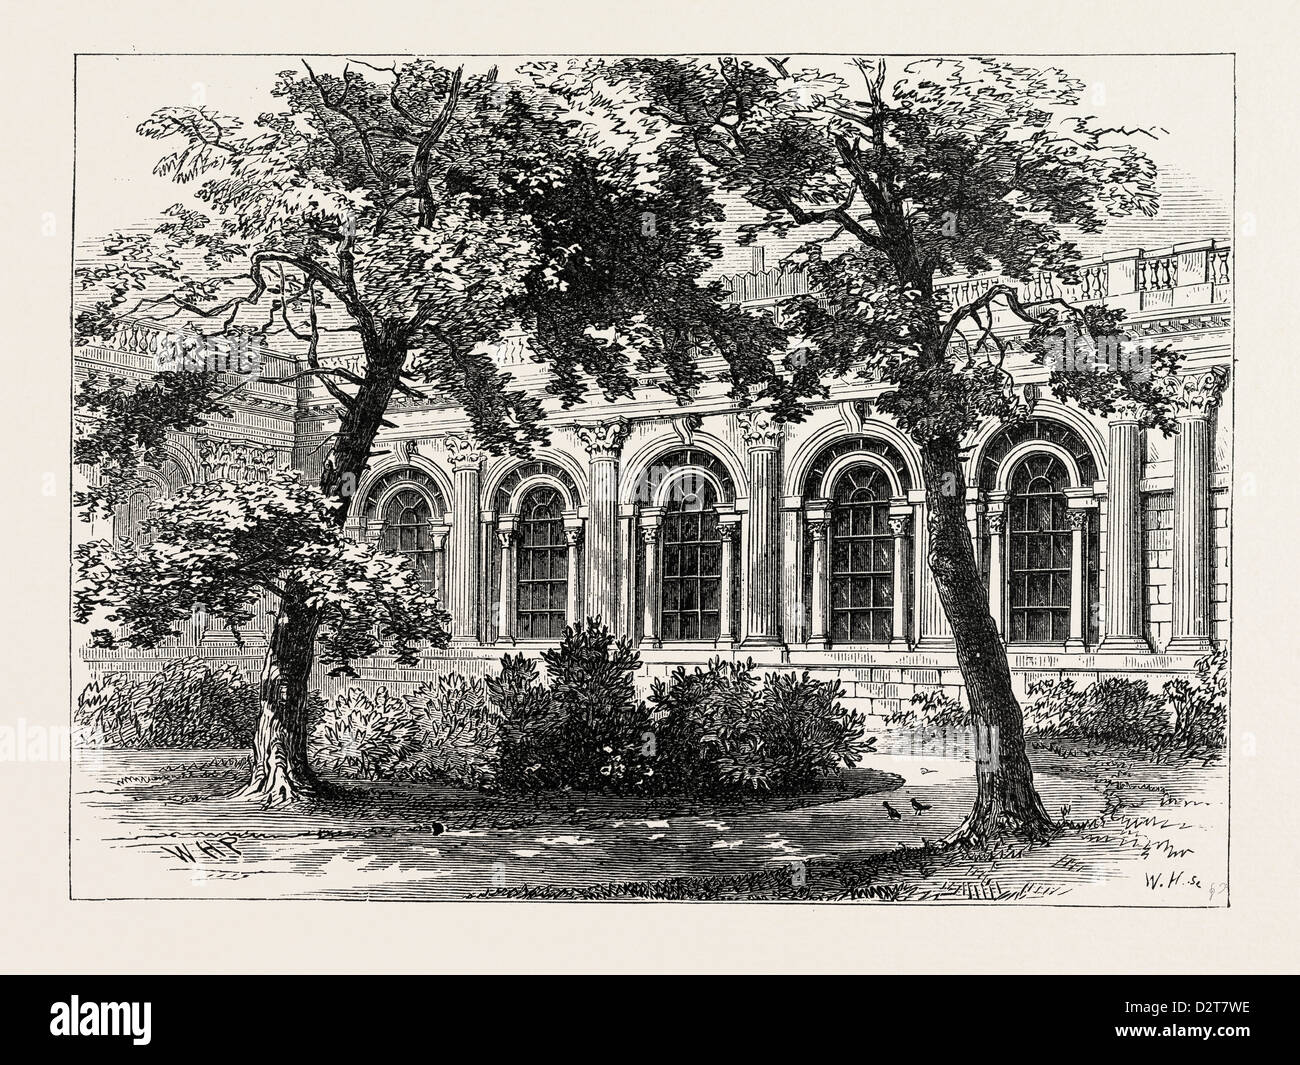 THE BANK PARLOUR EXTERIOR VIEW LONDON - Stock Image